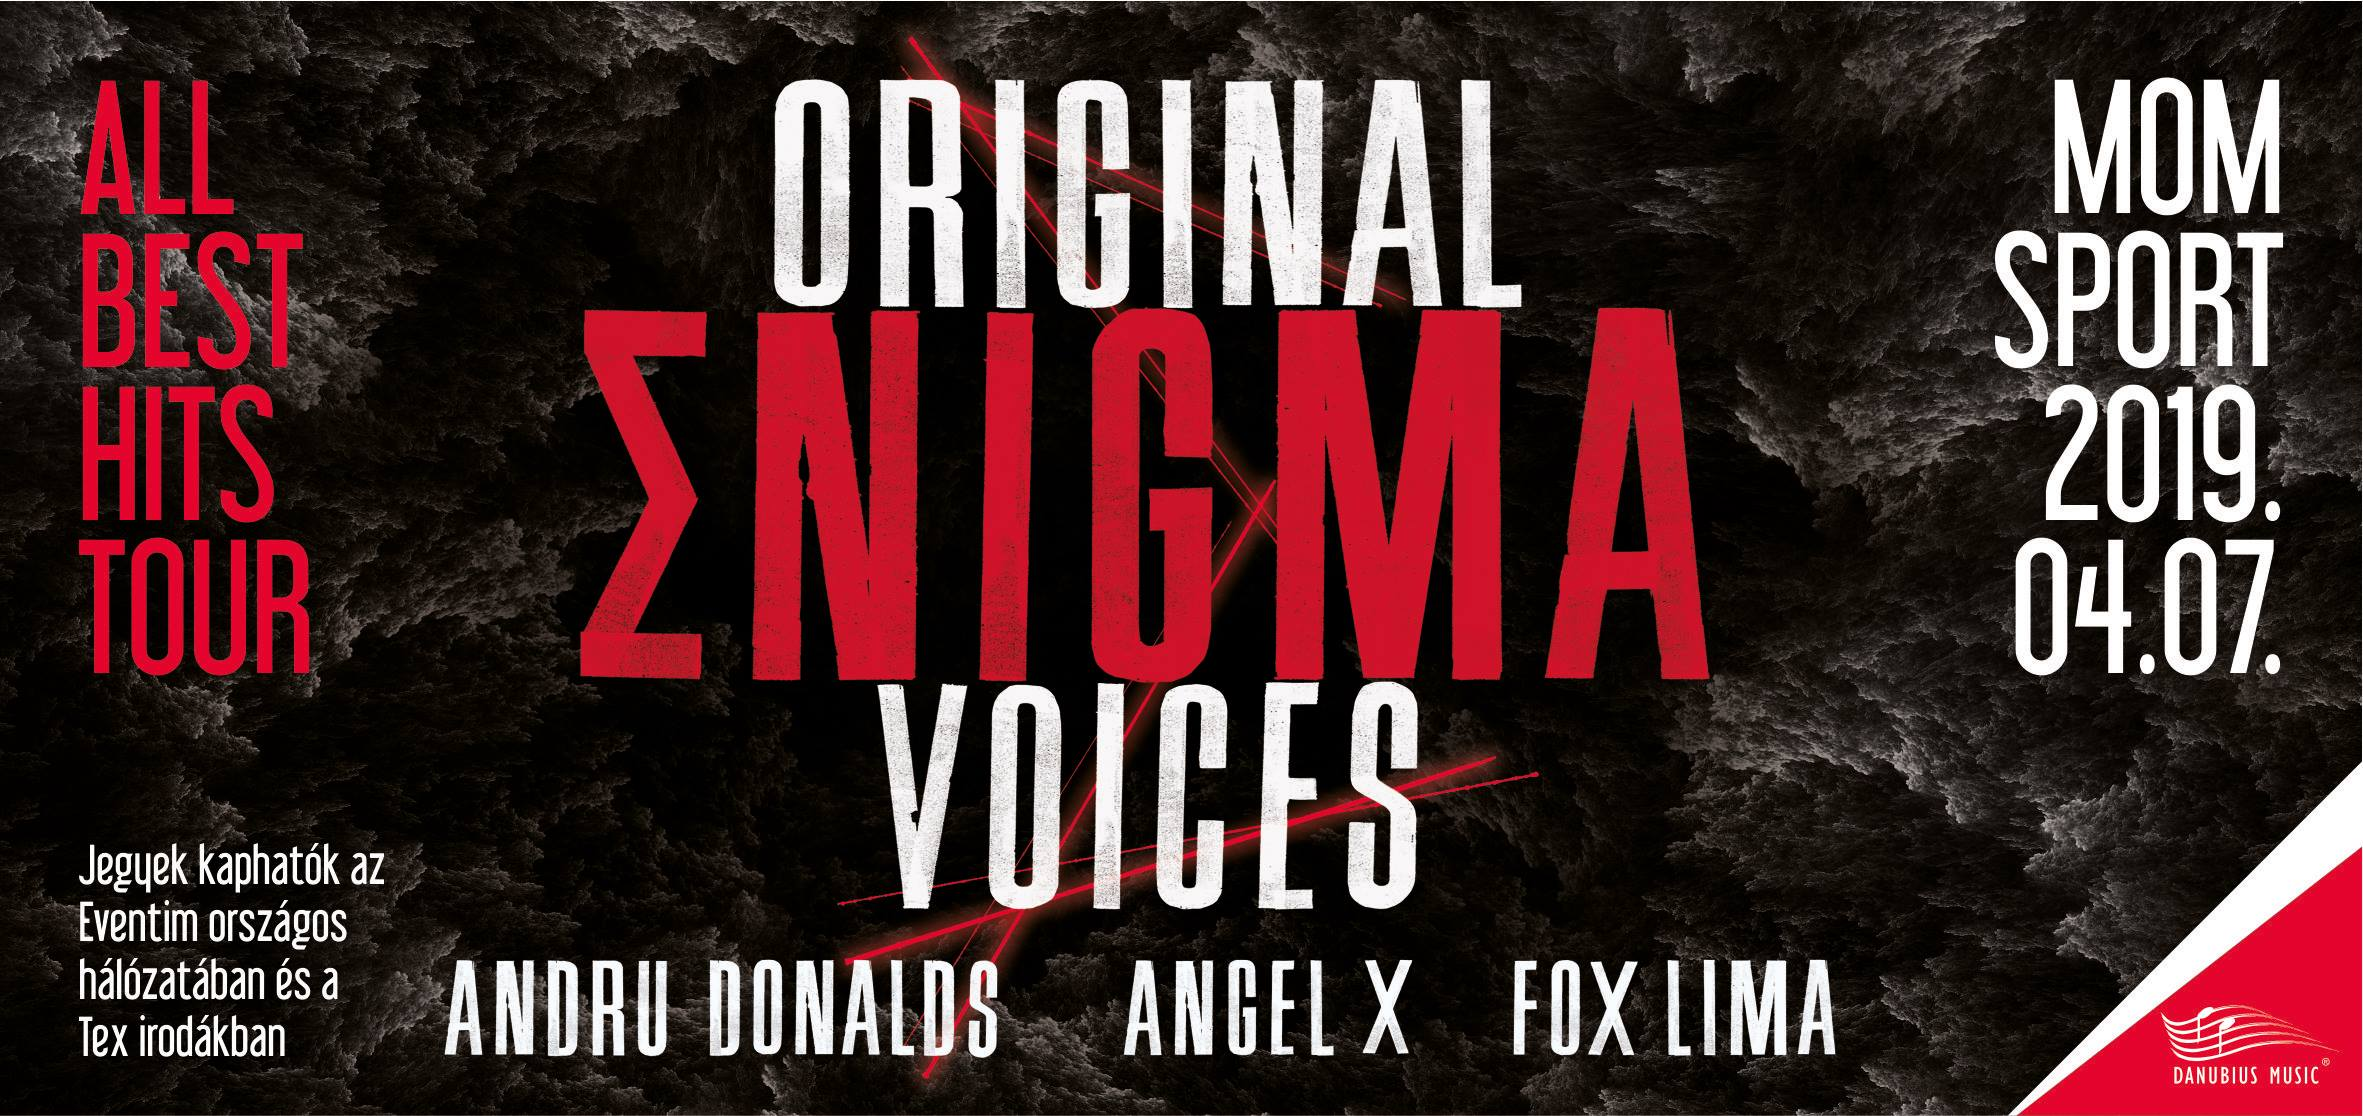 Original Enigma Voices To Come To Budapest, 7 April